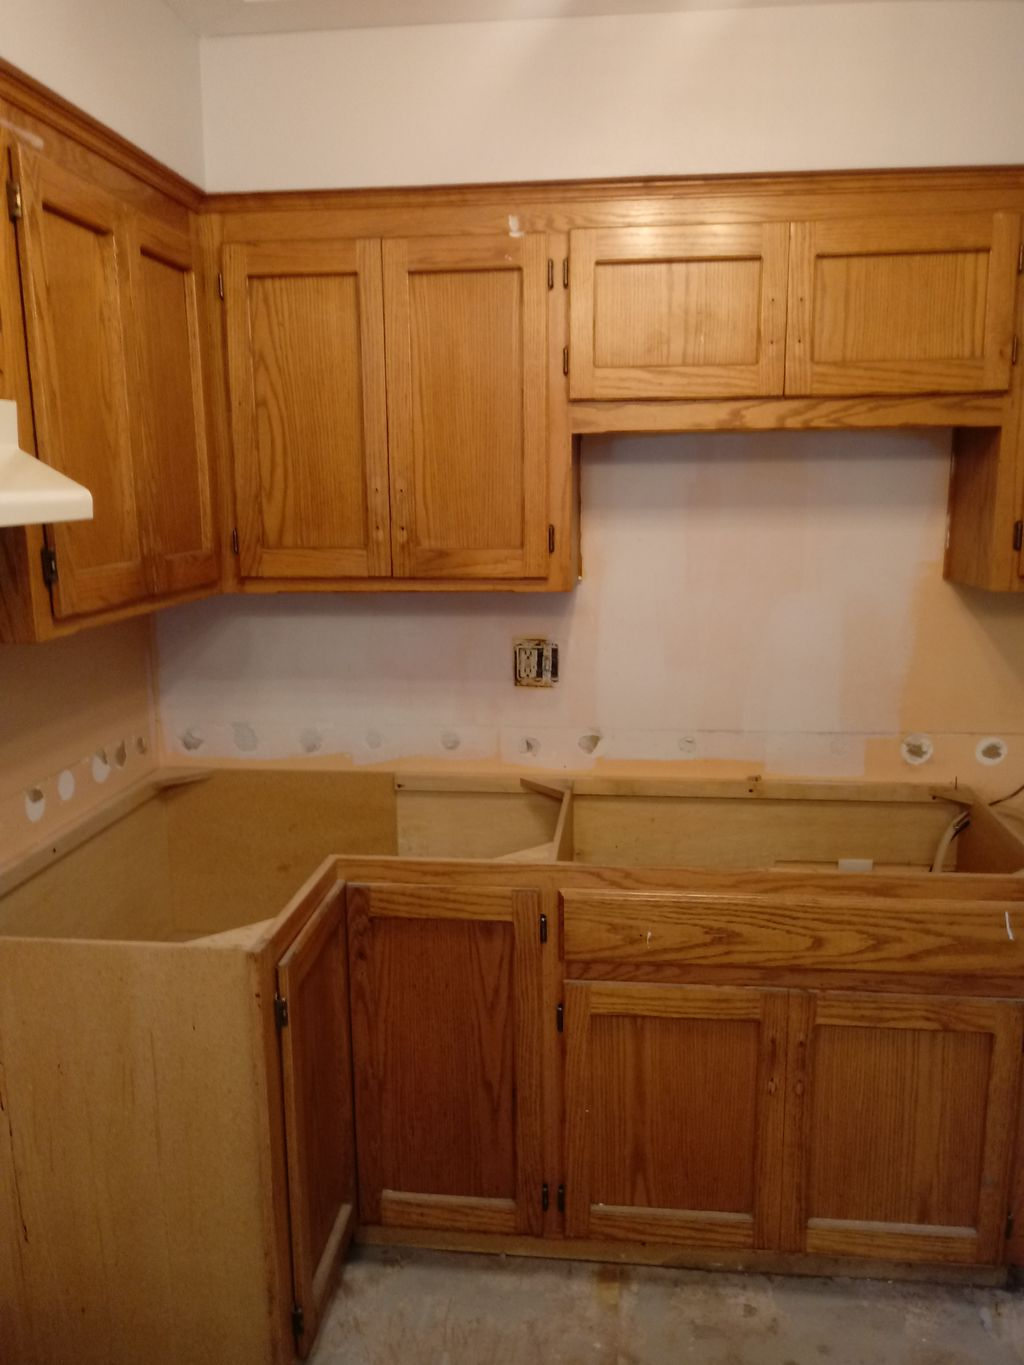 Town home cabinet salvage, upgrade